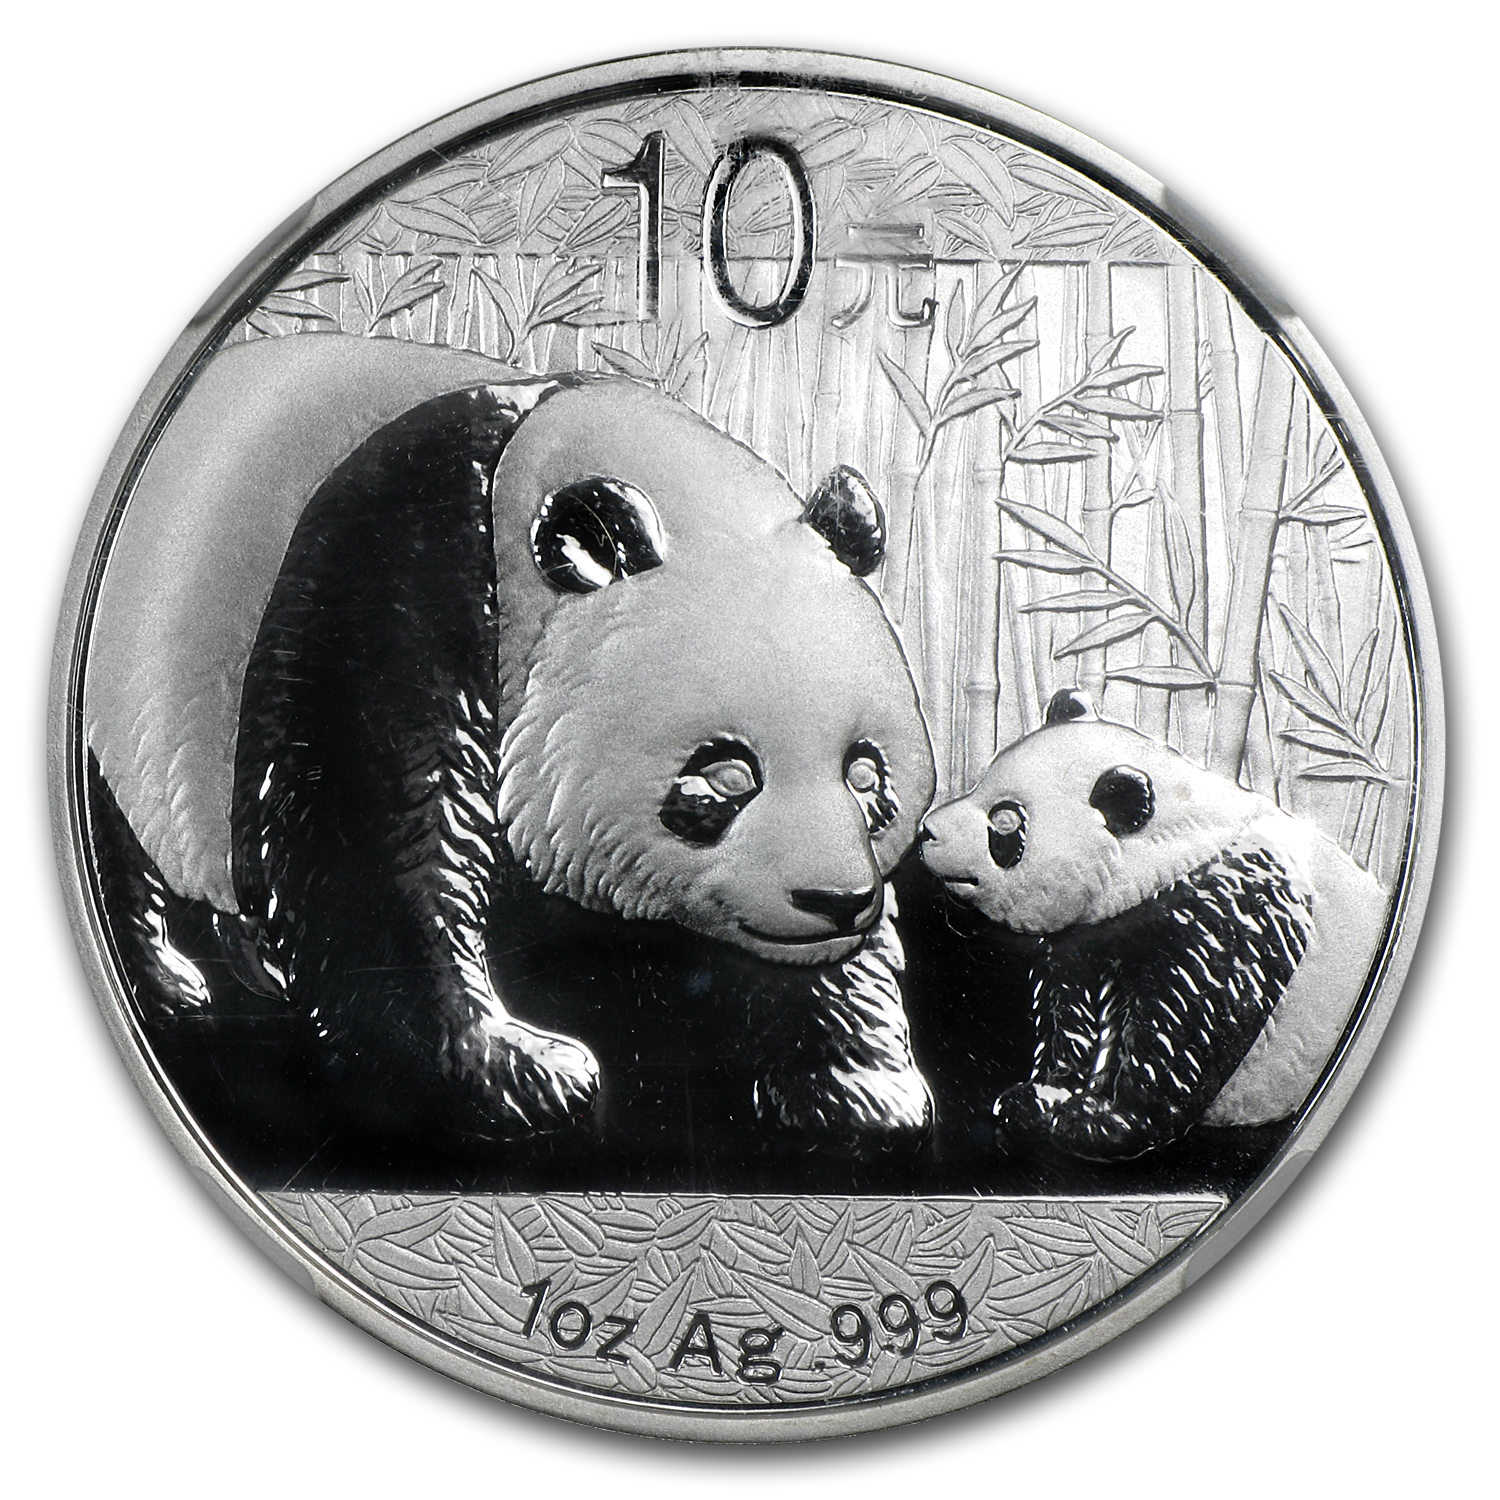 2011 China 1 oz Silver Panda MS-69 NGC